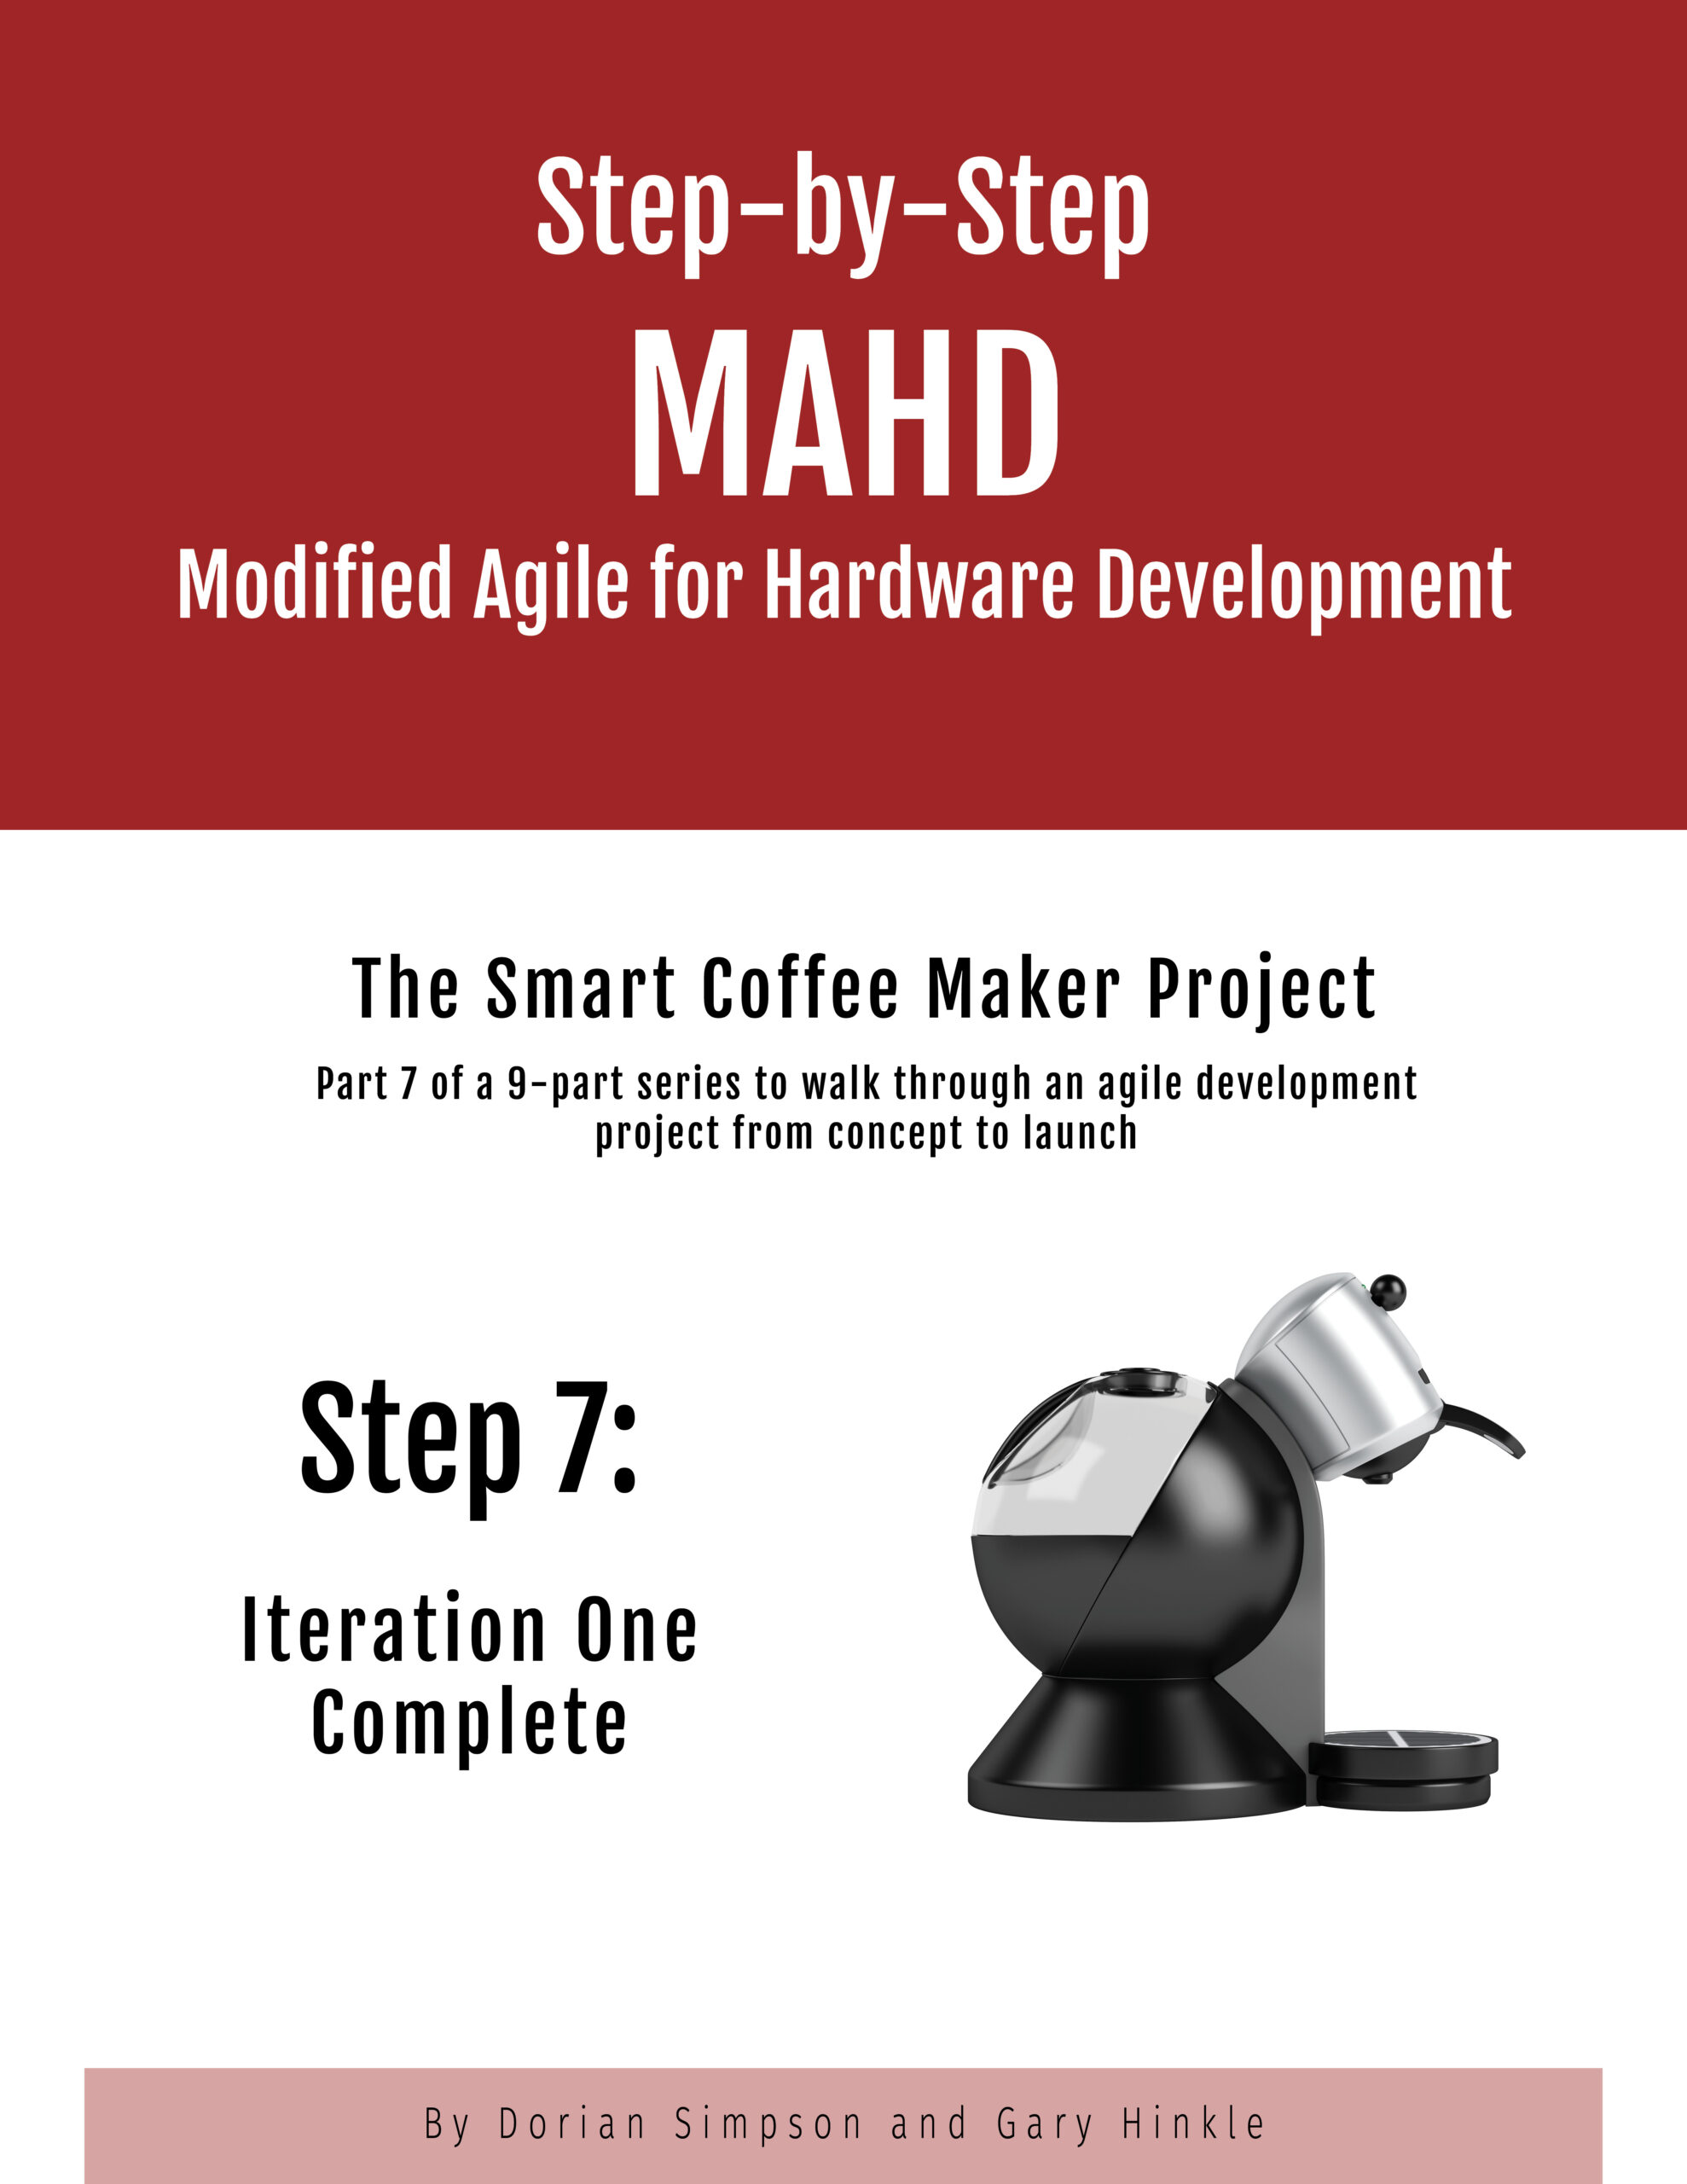 MAHD Step-by-Step Part 7 1st Iteration Compete